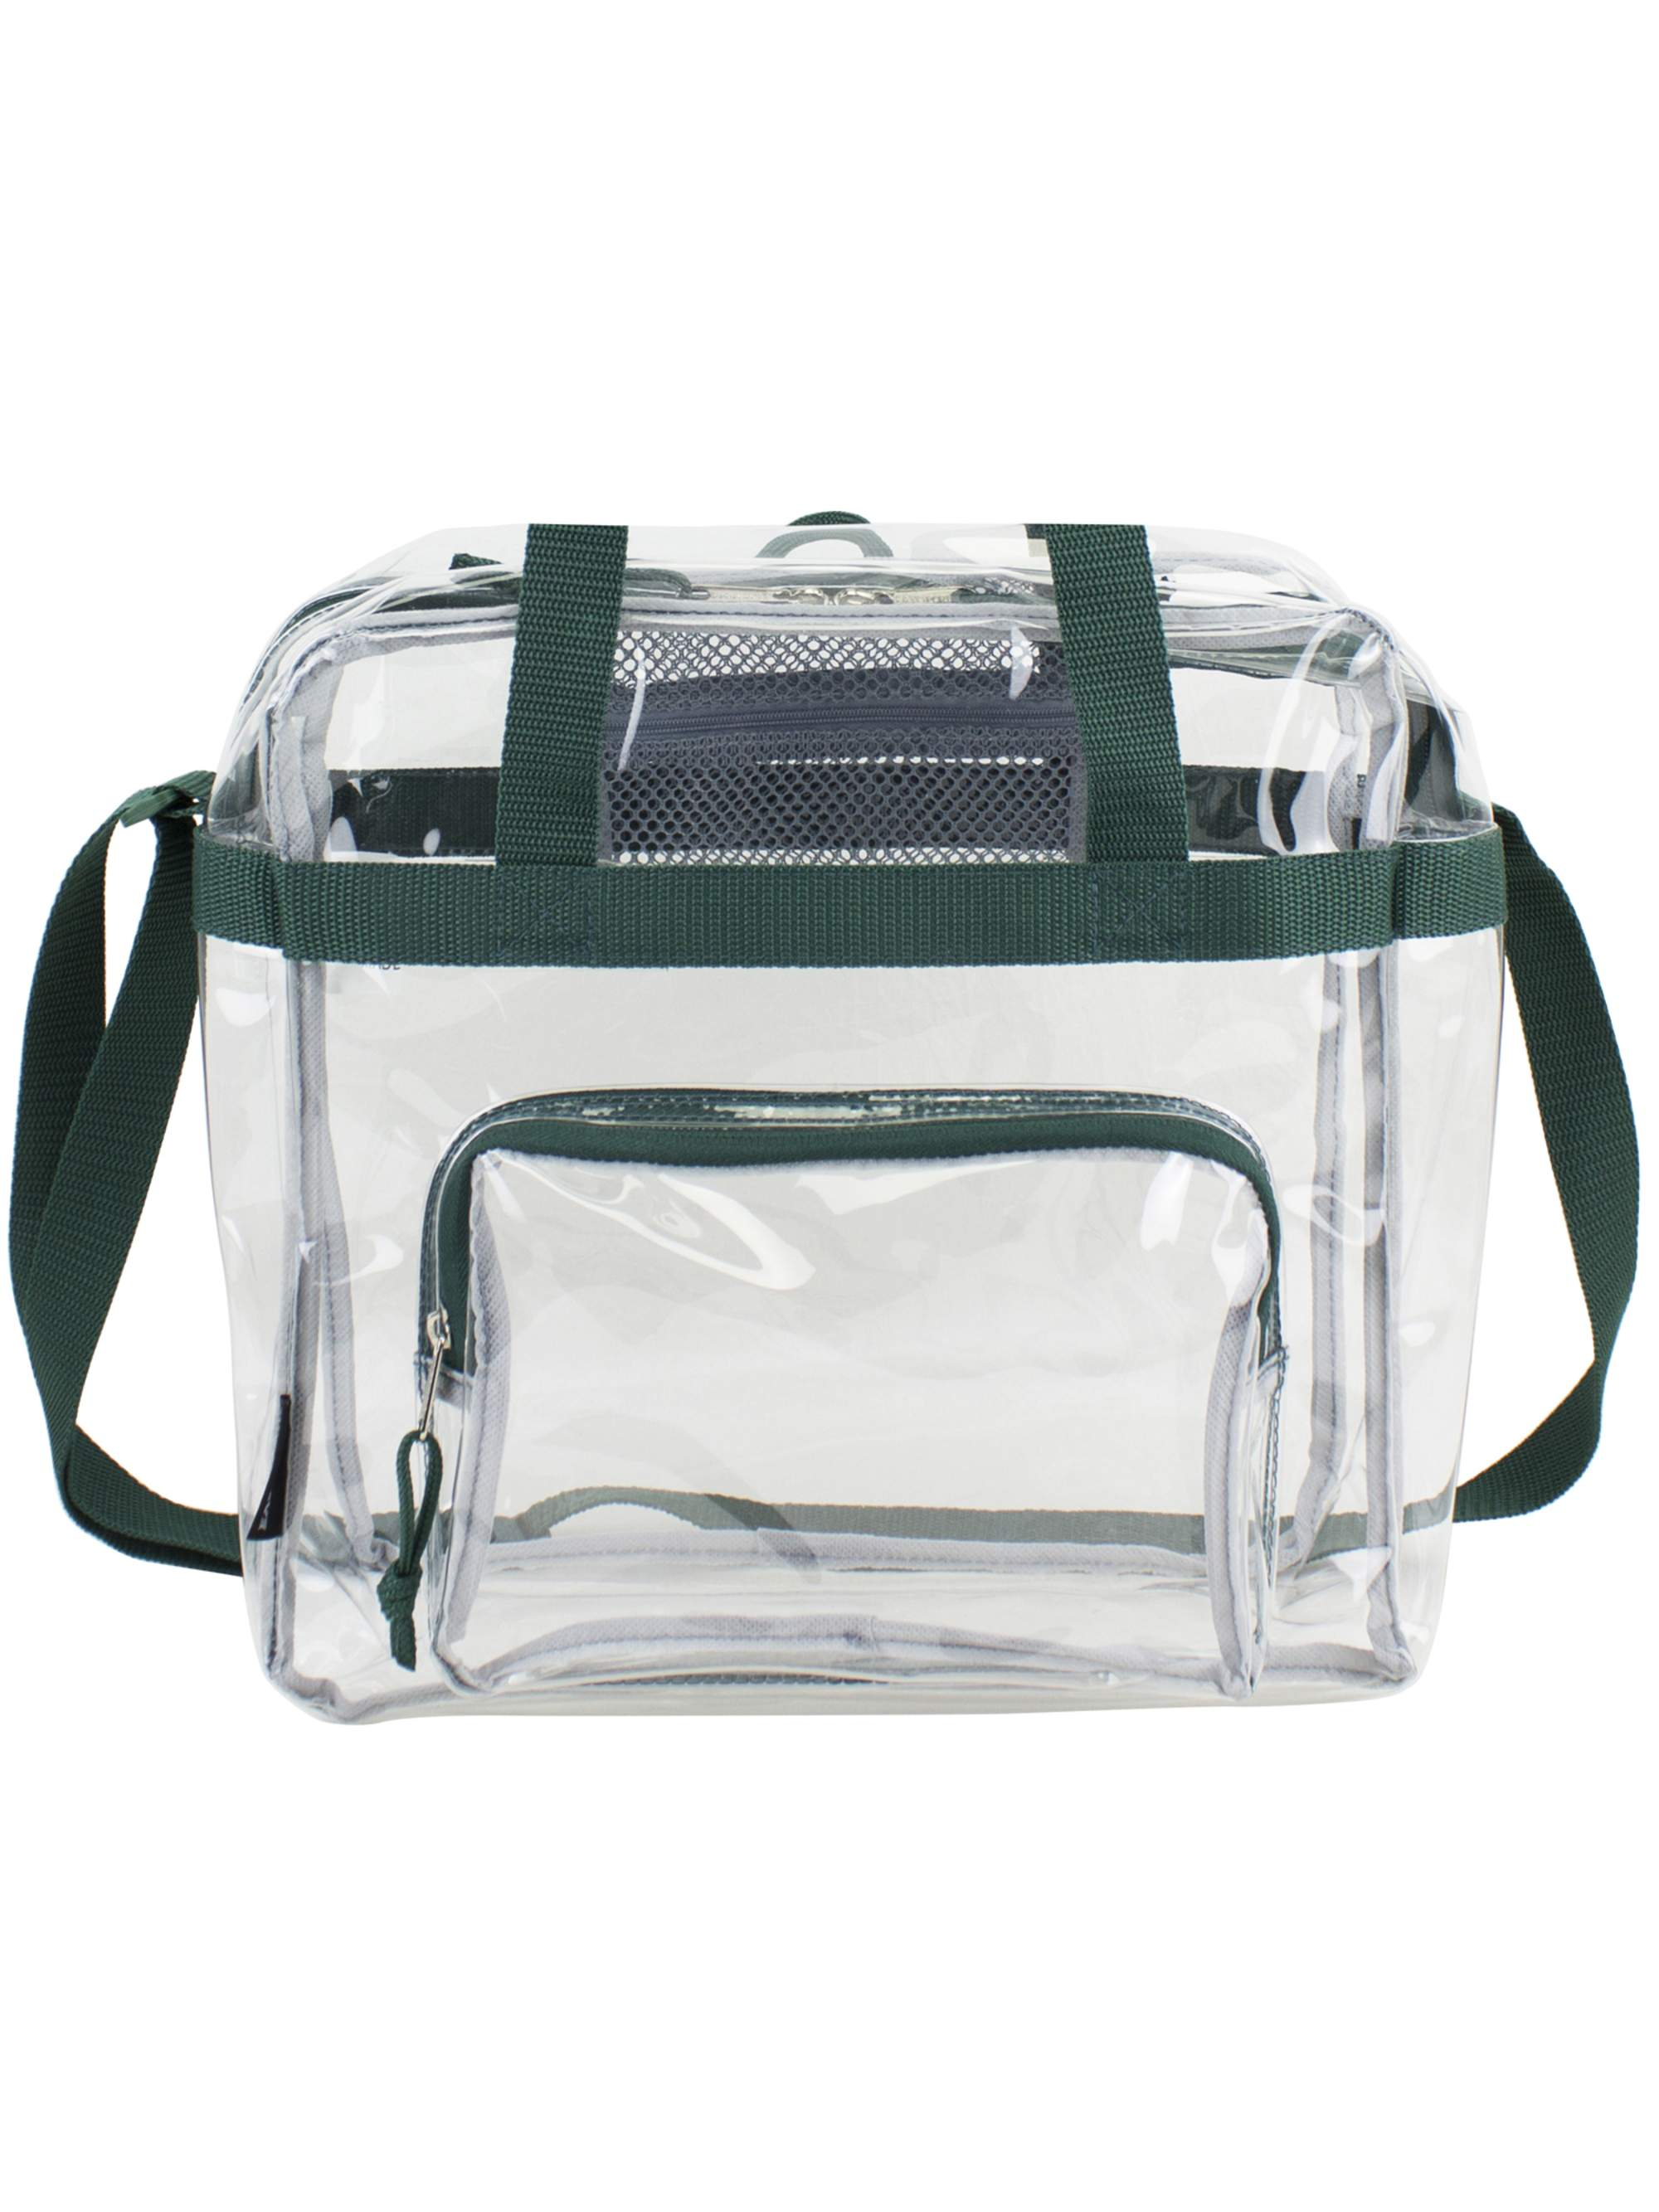 "Zuess Premium Clear Stadium Approved Bag Clear Tote Bag with Cross Body Messenger Adjustable Shoulder Strap-12/"" X 12/"" X 6/"""